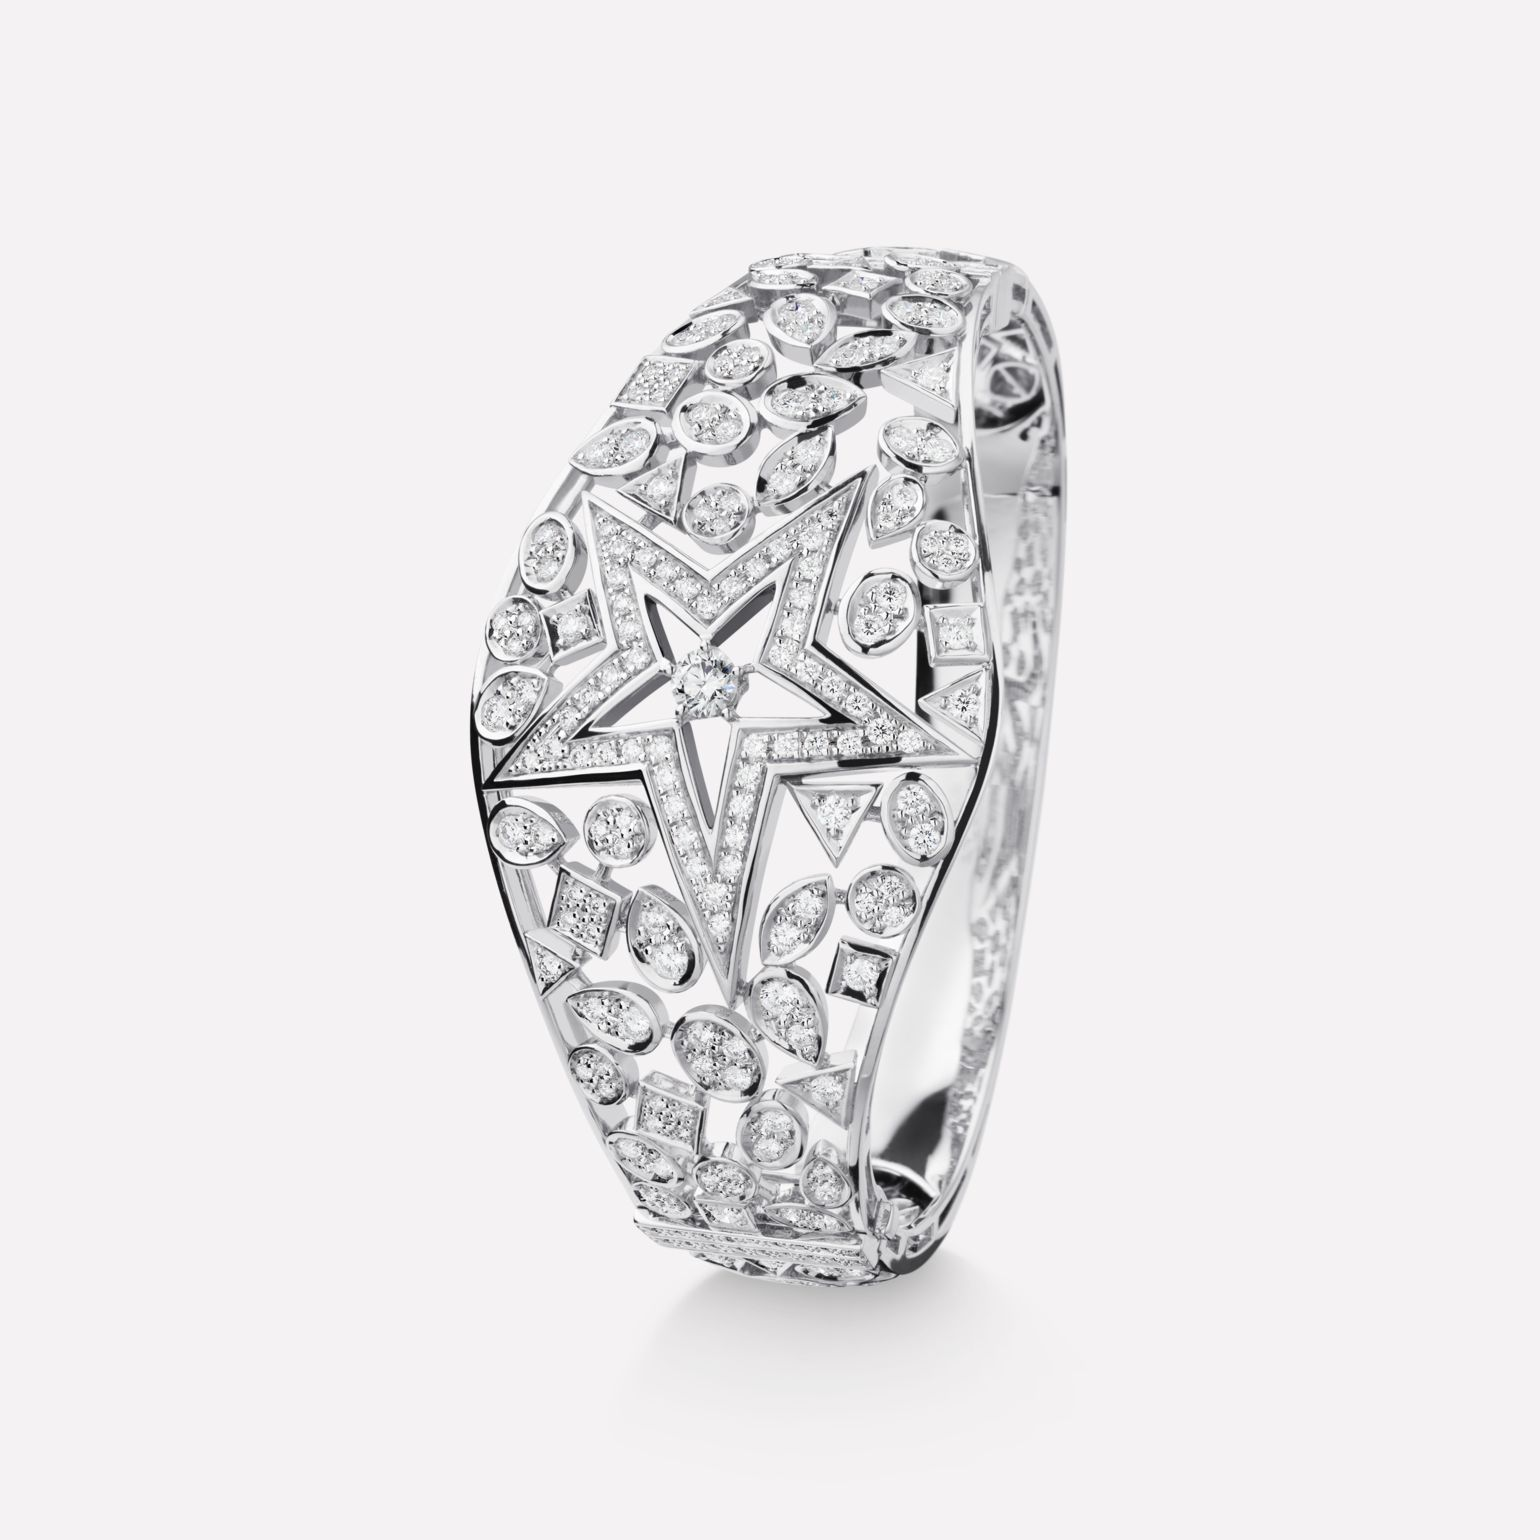 Comète bracelet Star cuff, in 18K white gold and diamonds with one center diamond